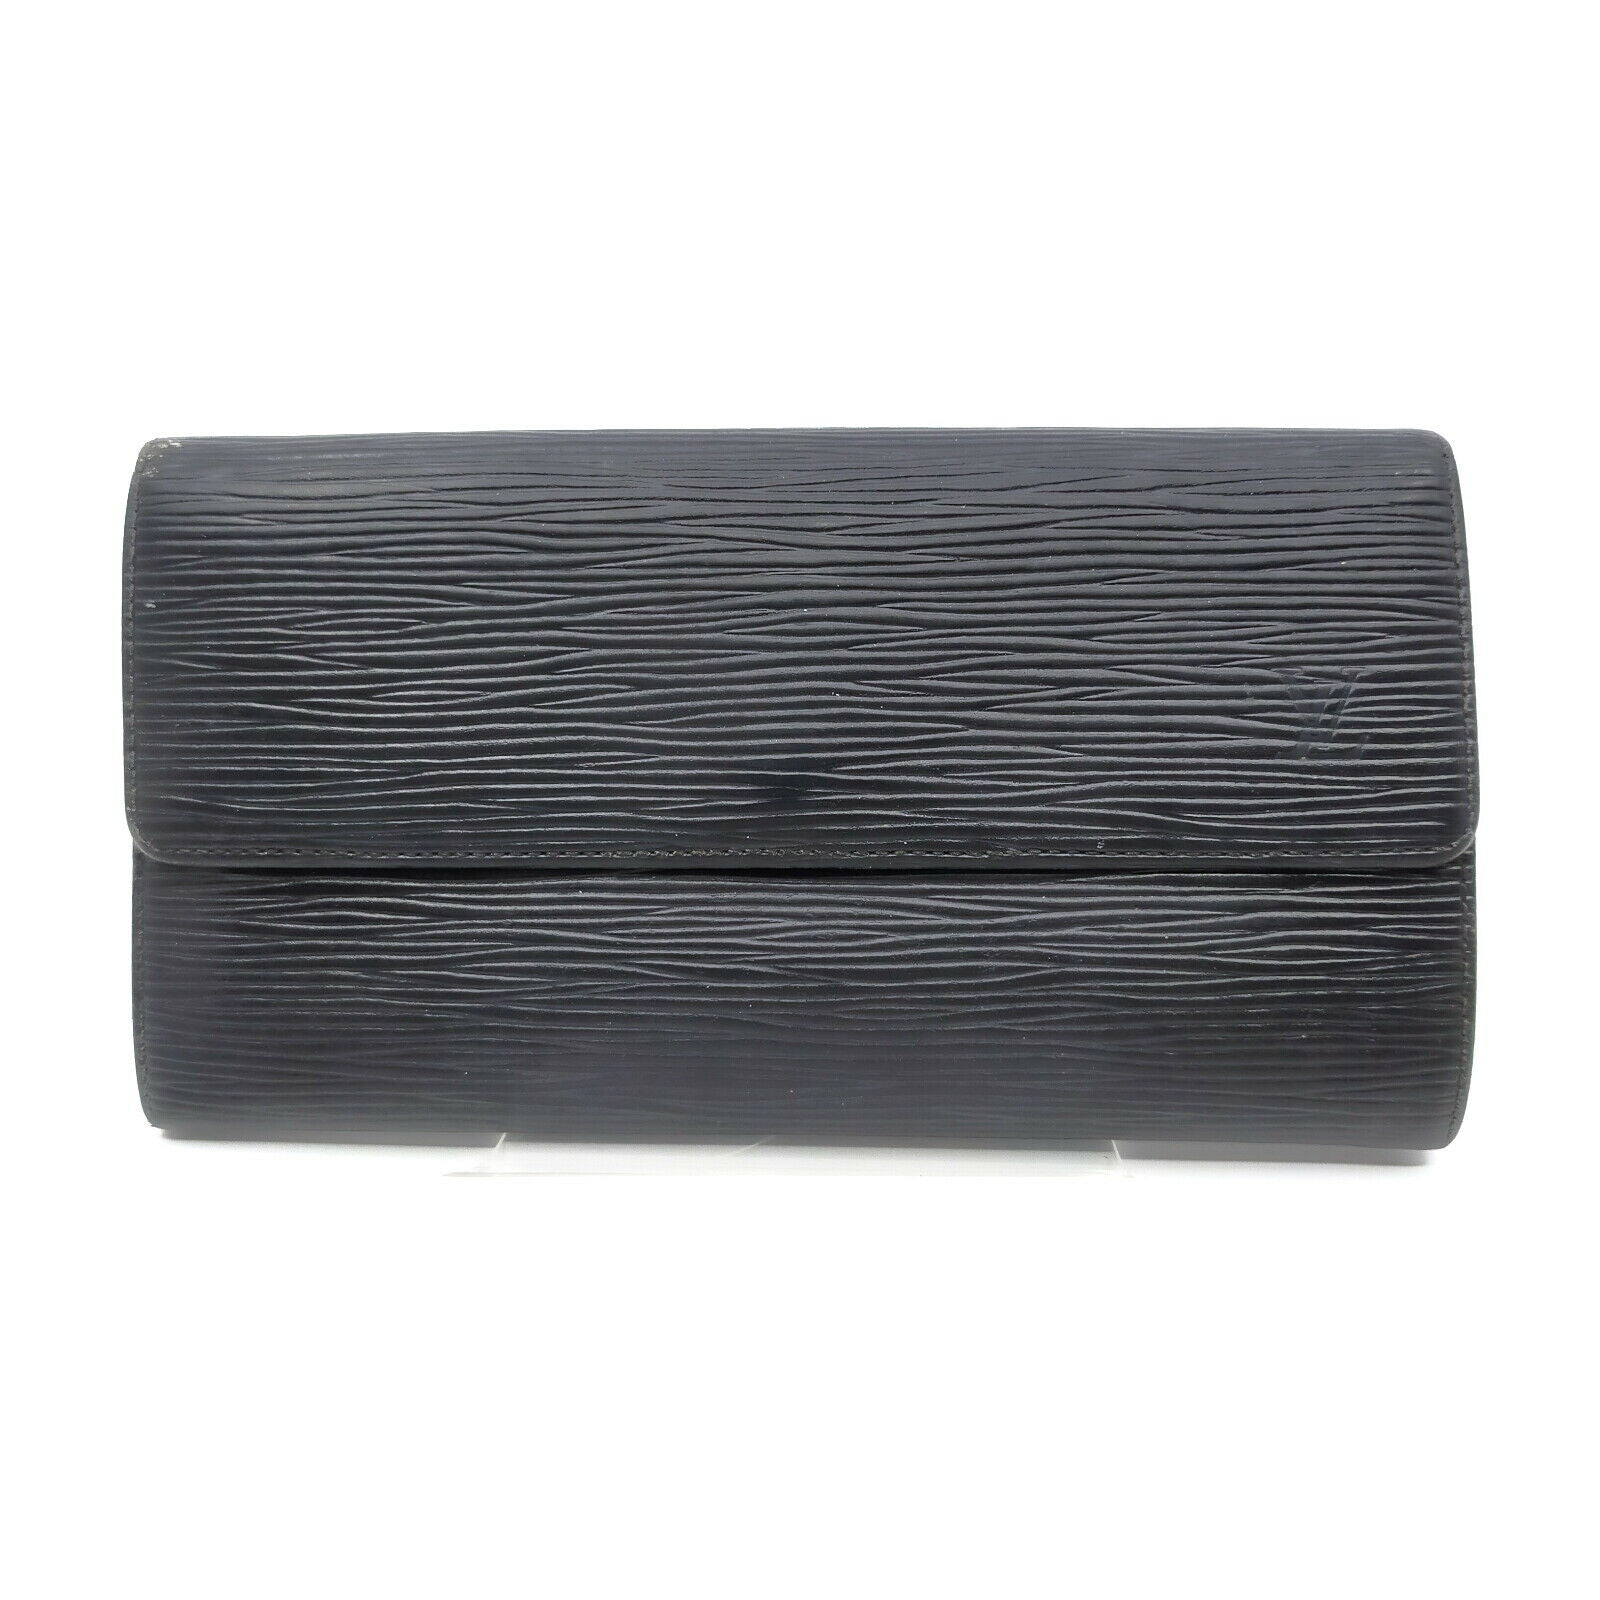 Louis Vuitton Portefeuille Sarah Black Epi Long Wallet  11565